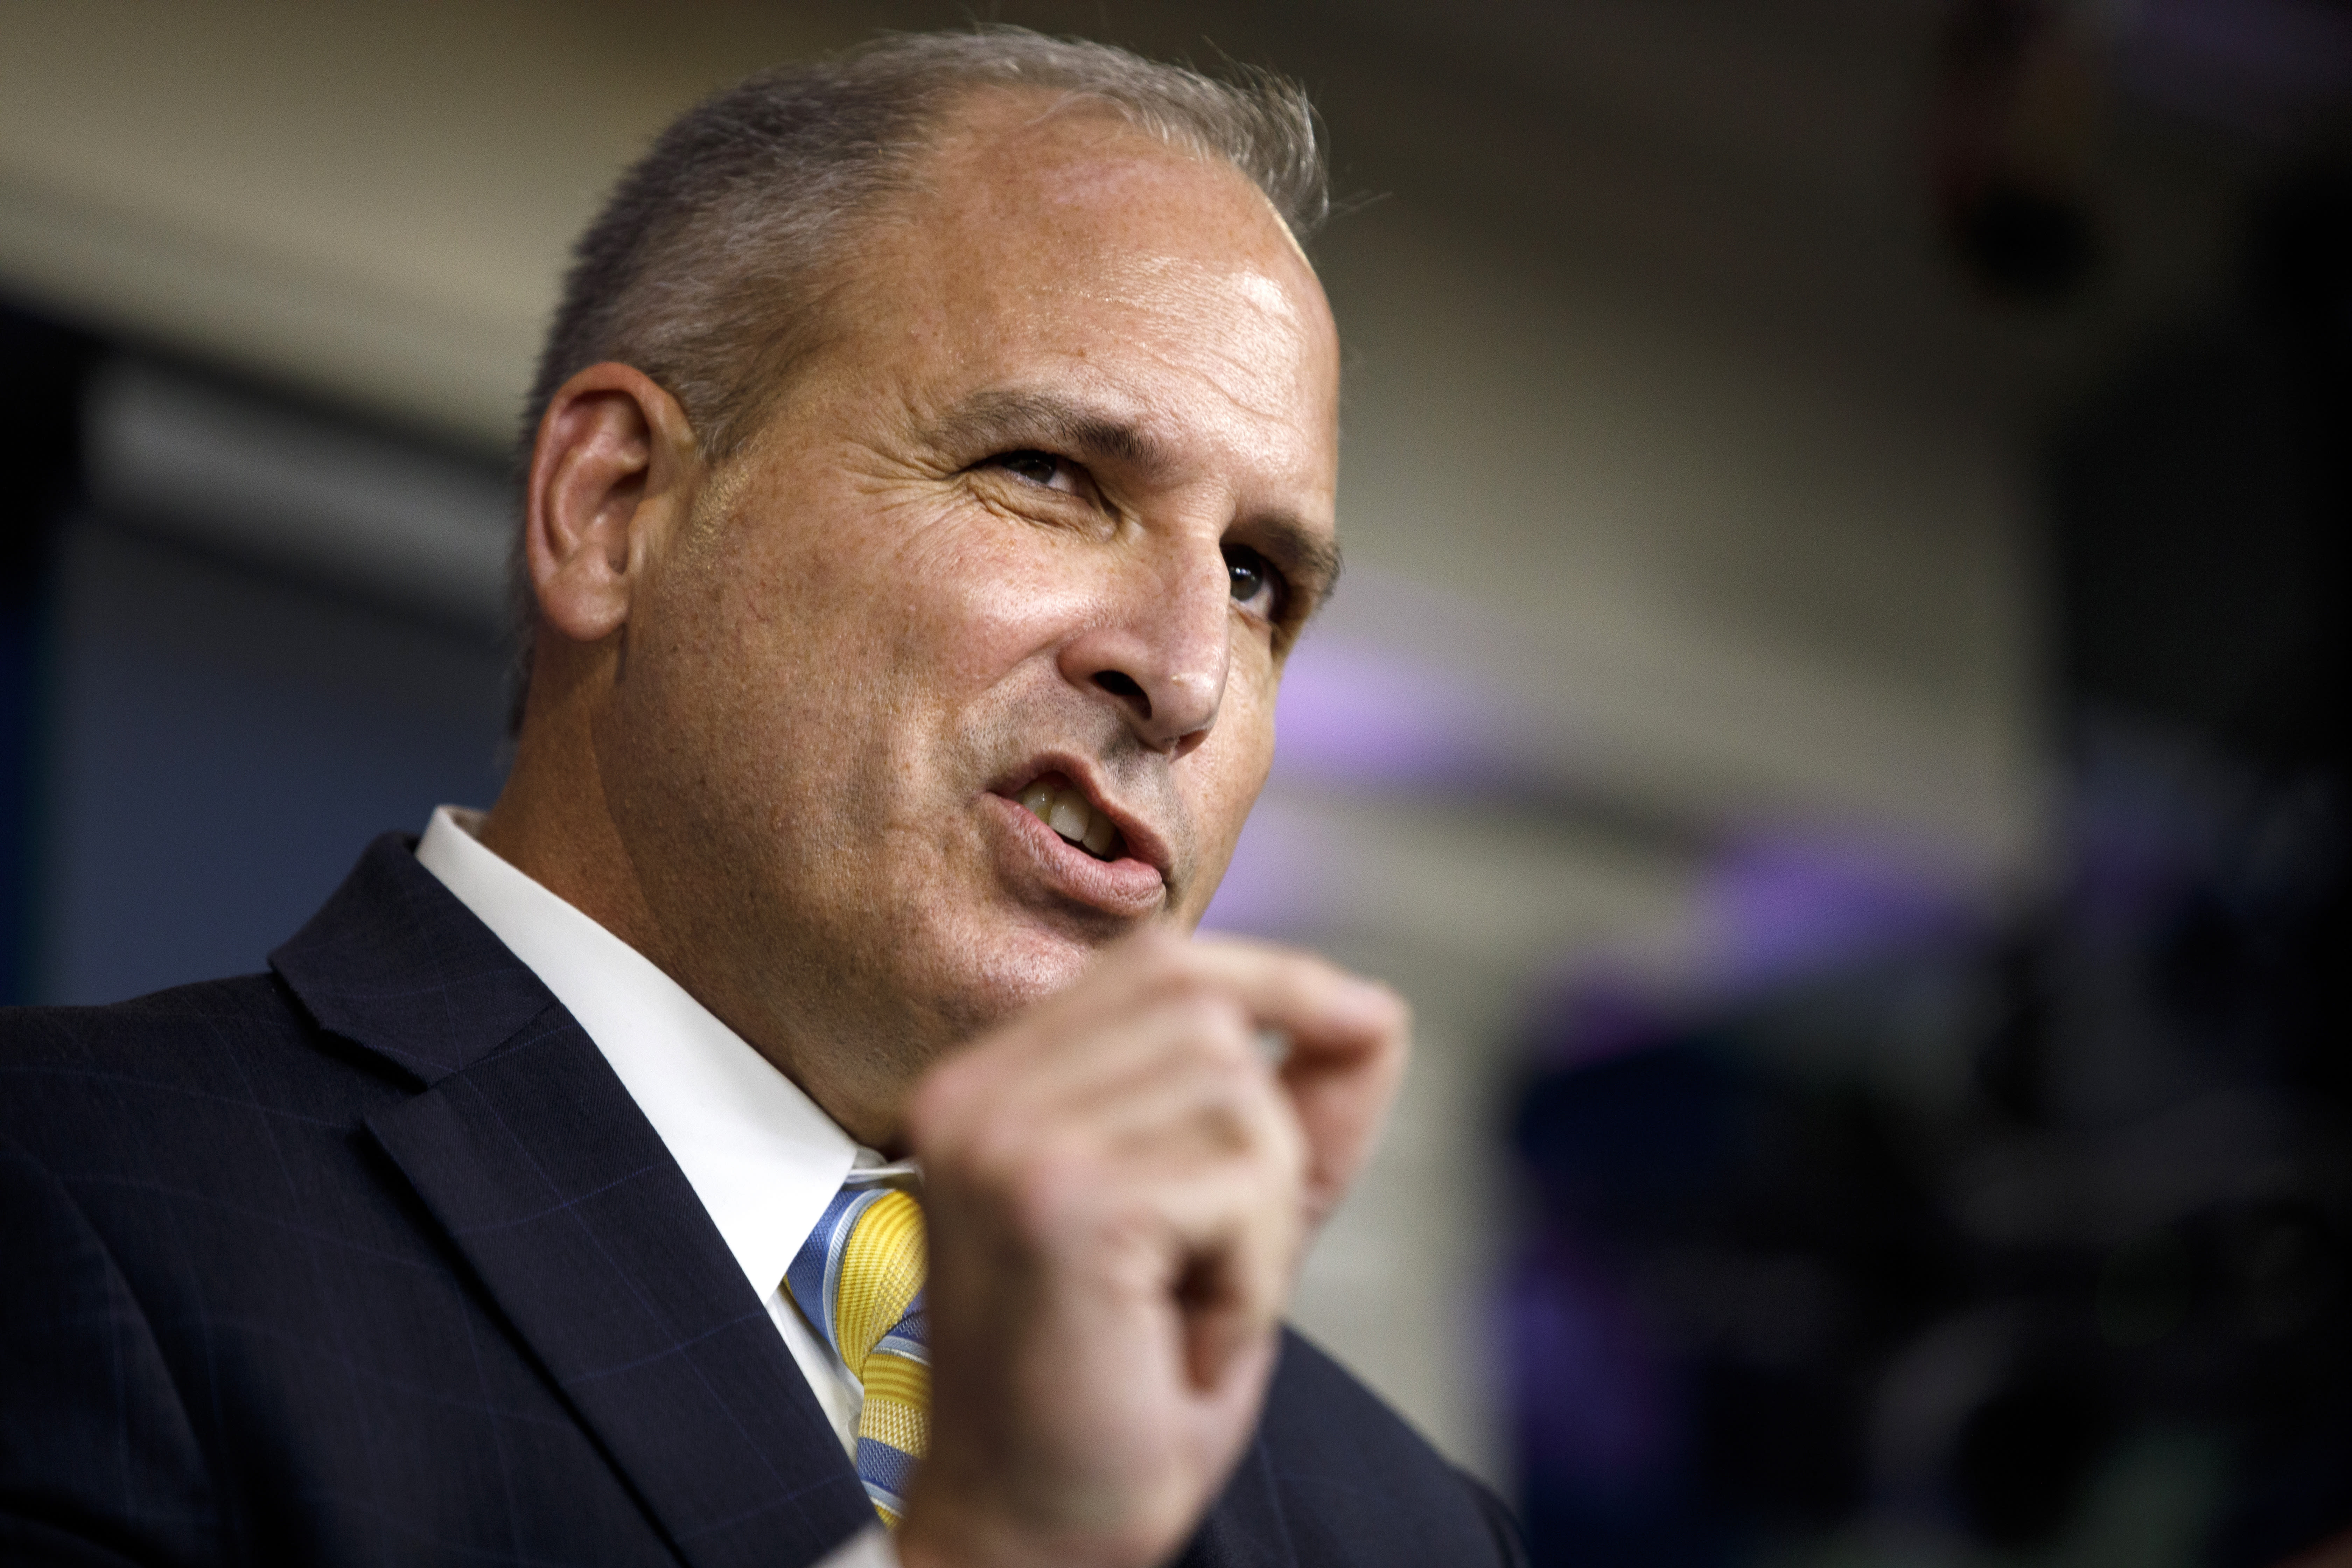 Acting Commissioner of Customs and Border Protection Mark Morgan speaks during a news conference at the White House in Washington, Monday, Sept. 9, 2019. (AP Photo/Carolyn Kaster)